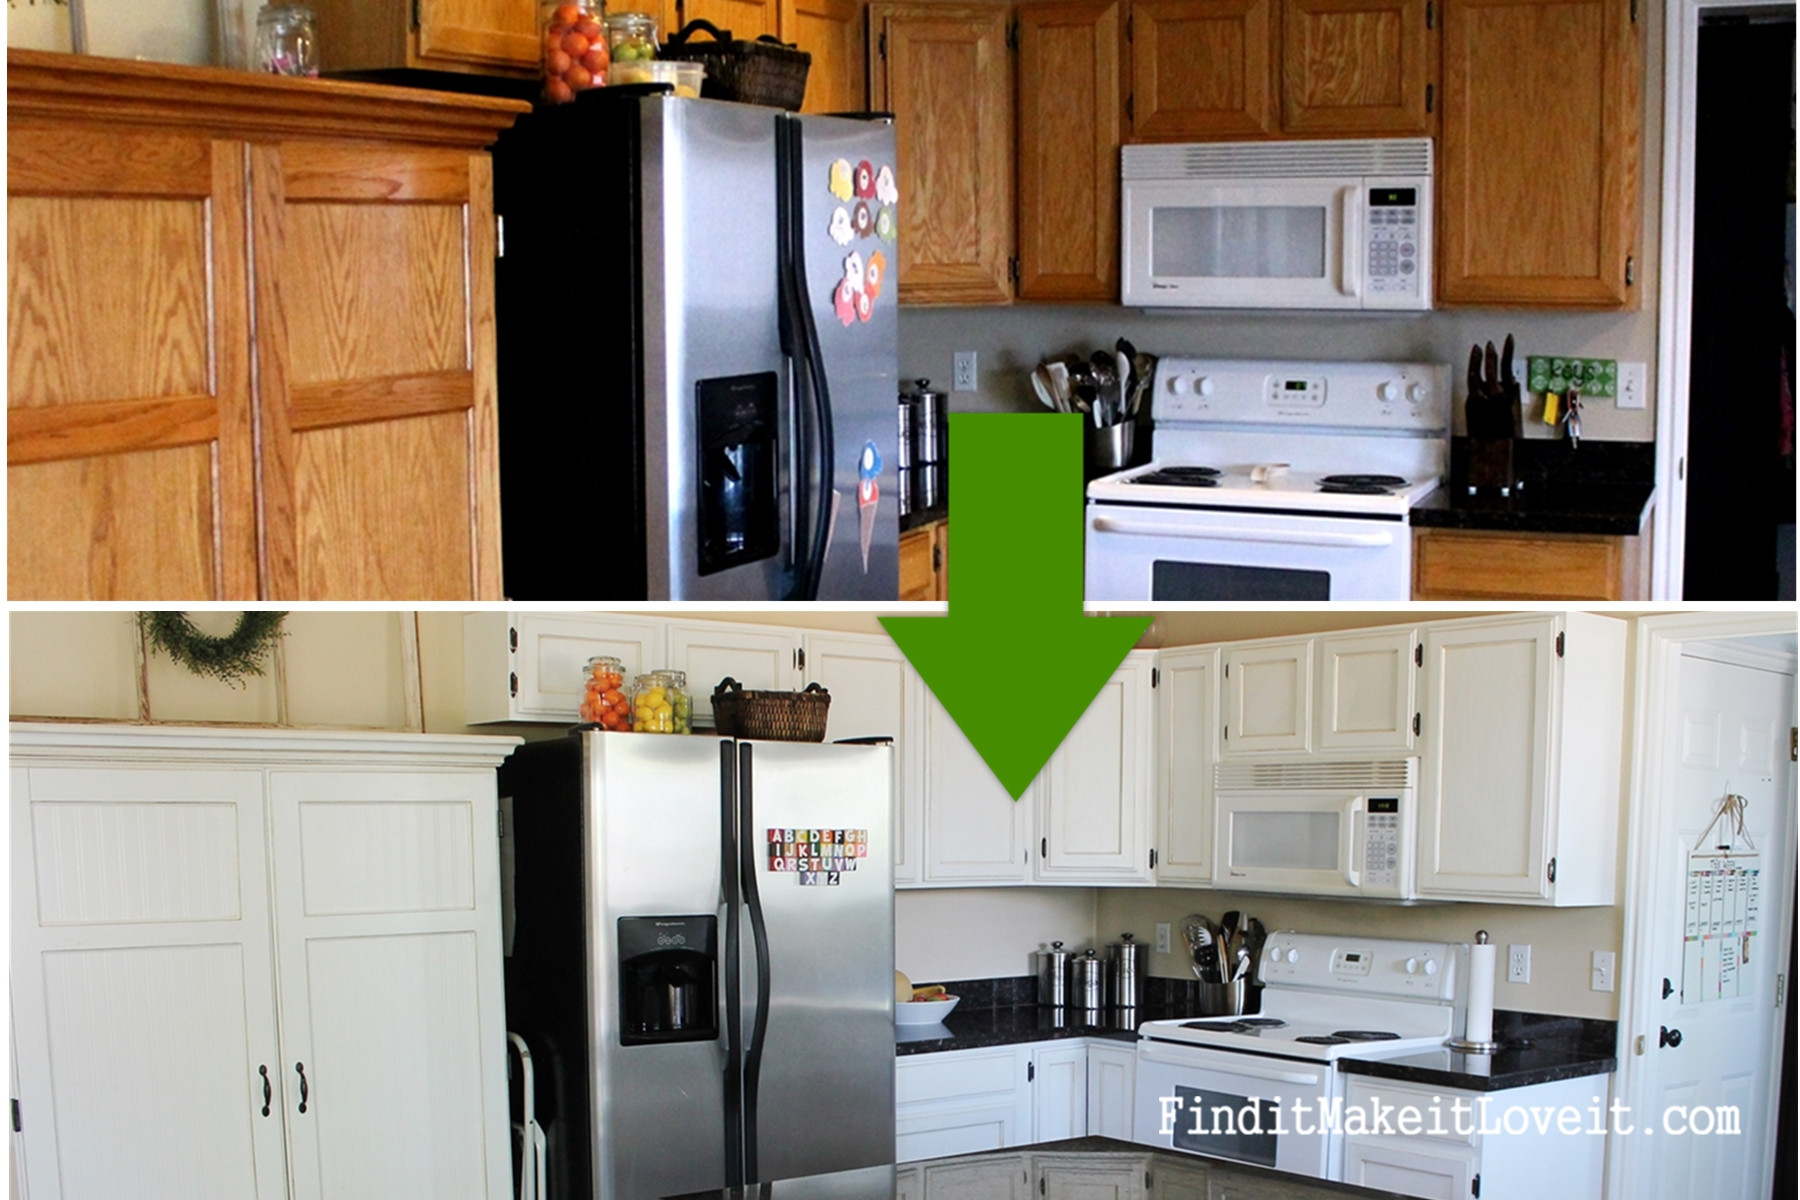 Best ideas about Painting Kitchen Cabinets DIY . Save or Pin $150 Kitchen Cabinet Makeover Find it Make it Love it Now.